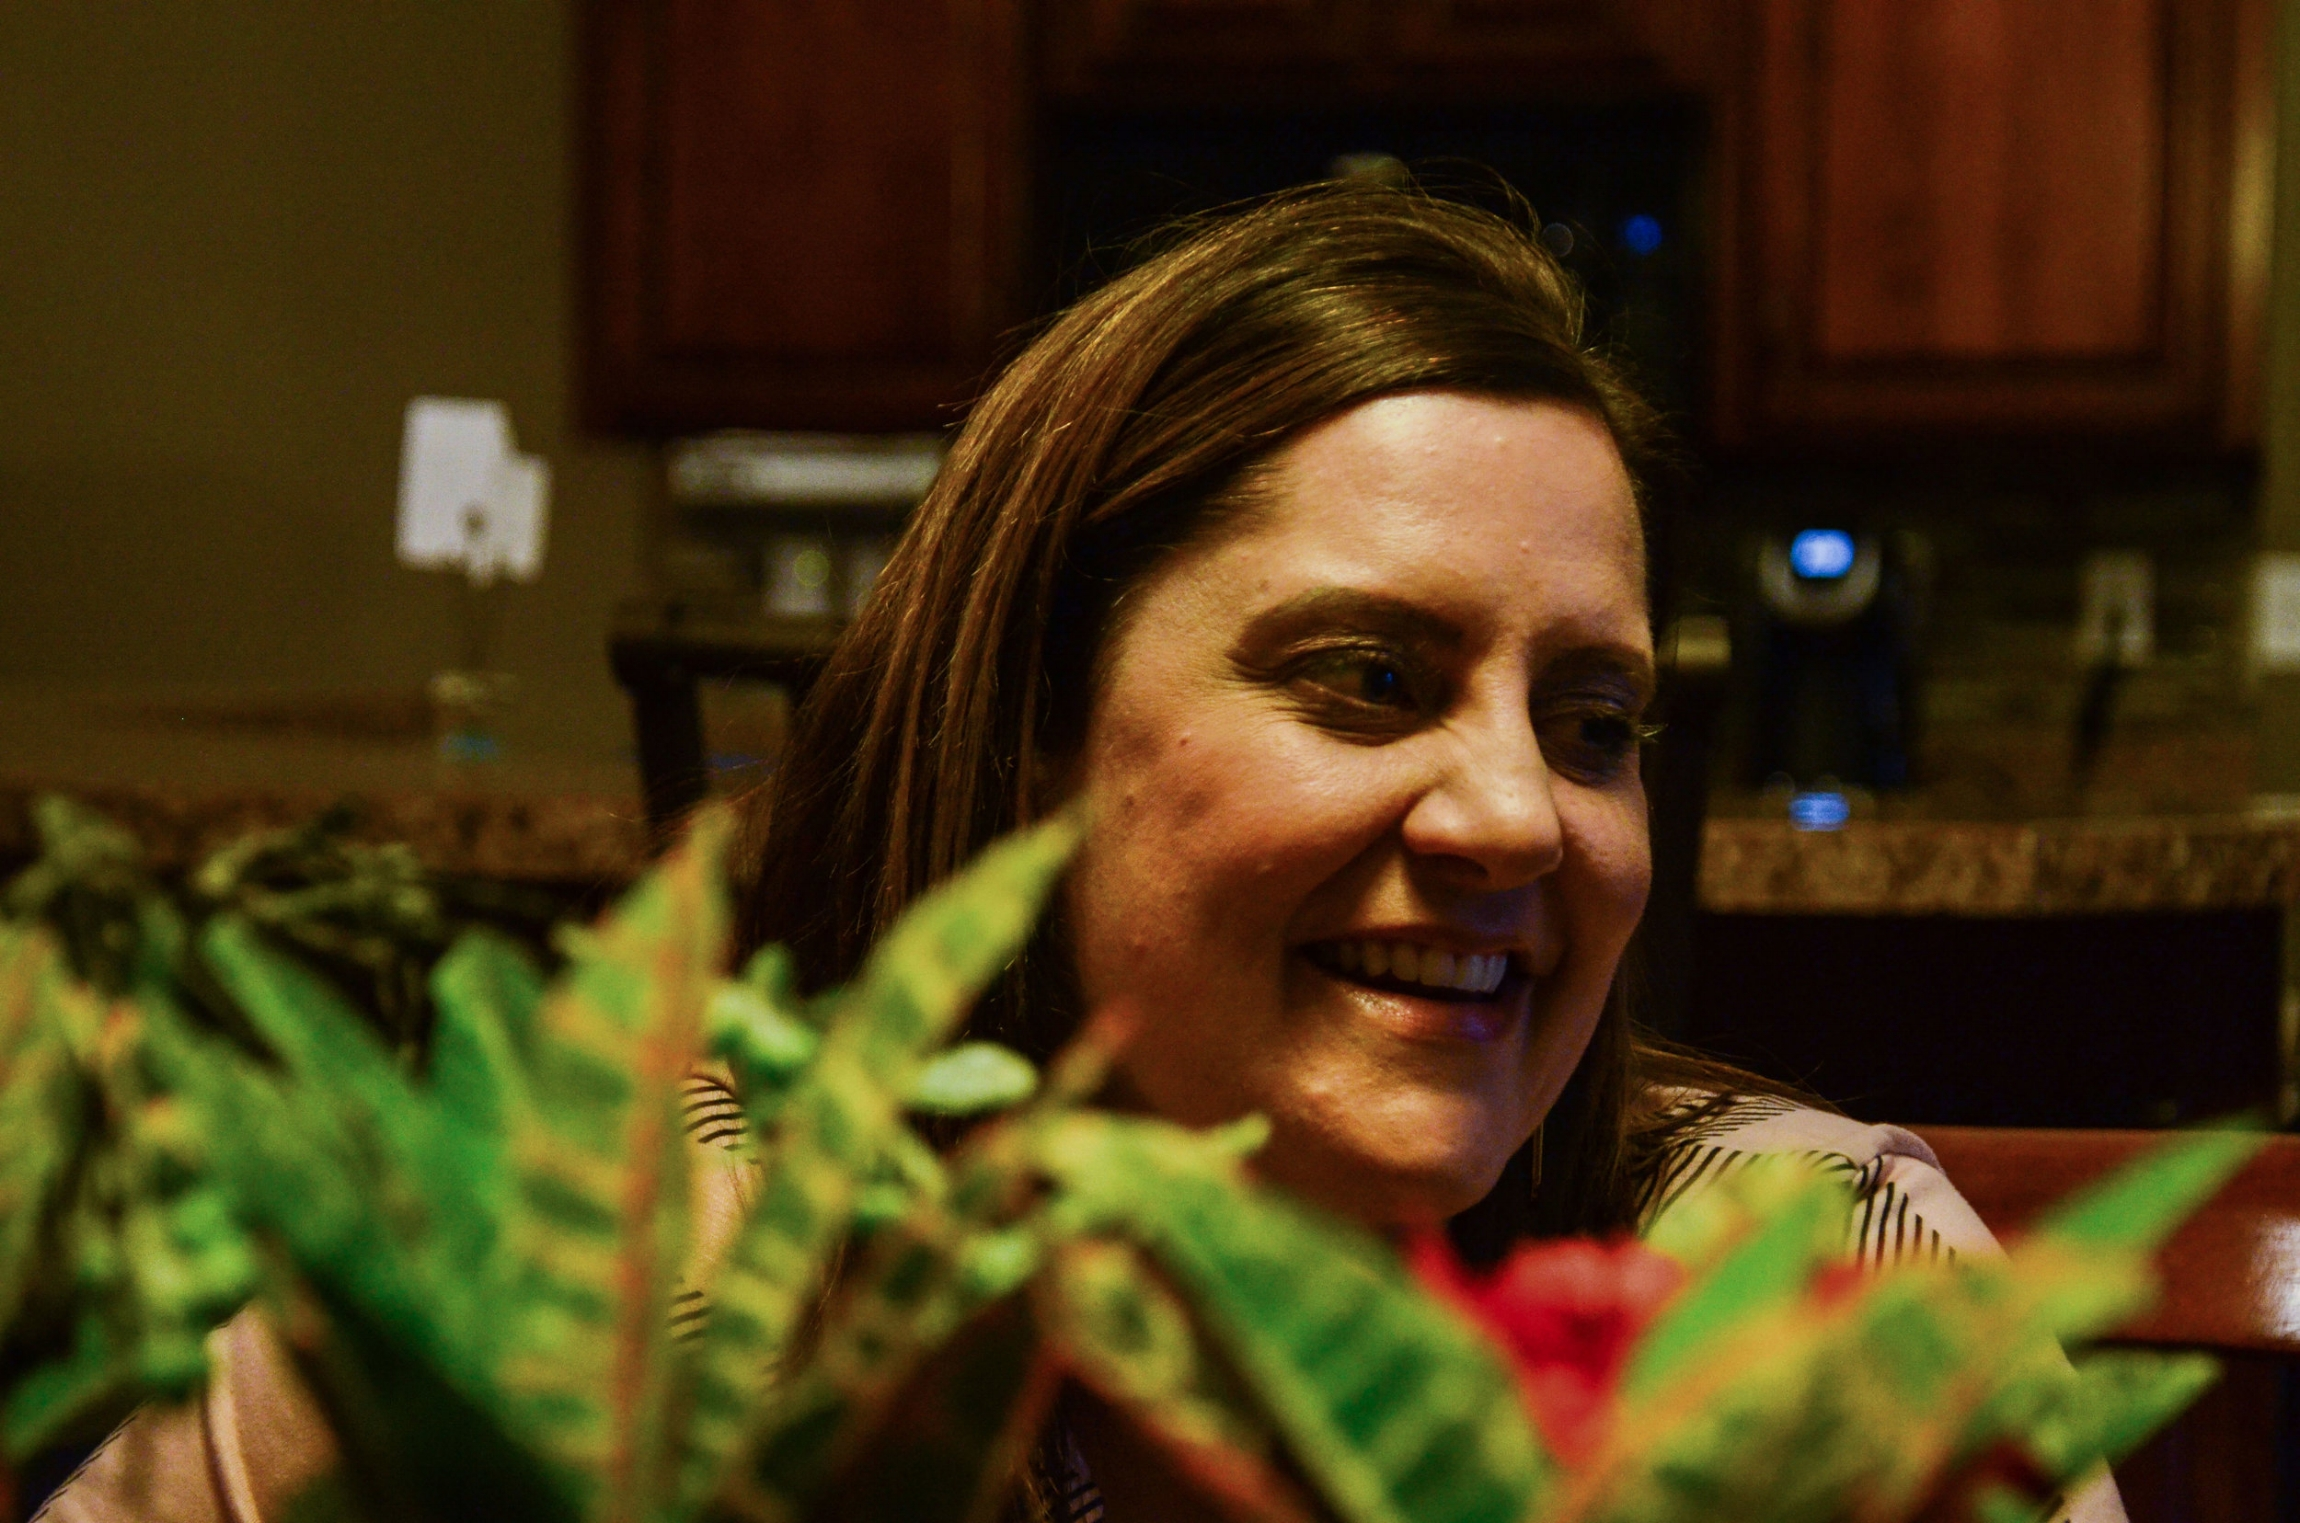 Kimberly Atnip Quirouet talks about her experience losing her son, Garrett Atnip about 12 years ago in her house in Jefferson City, Missouri, on Wednesday, April 5, 2017. Garrett passed away because of Sudden Infant Death Syndrome when he was two months old.